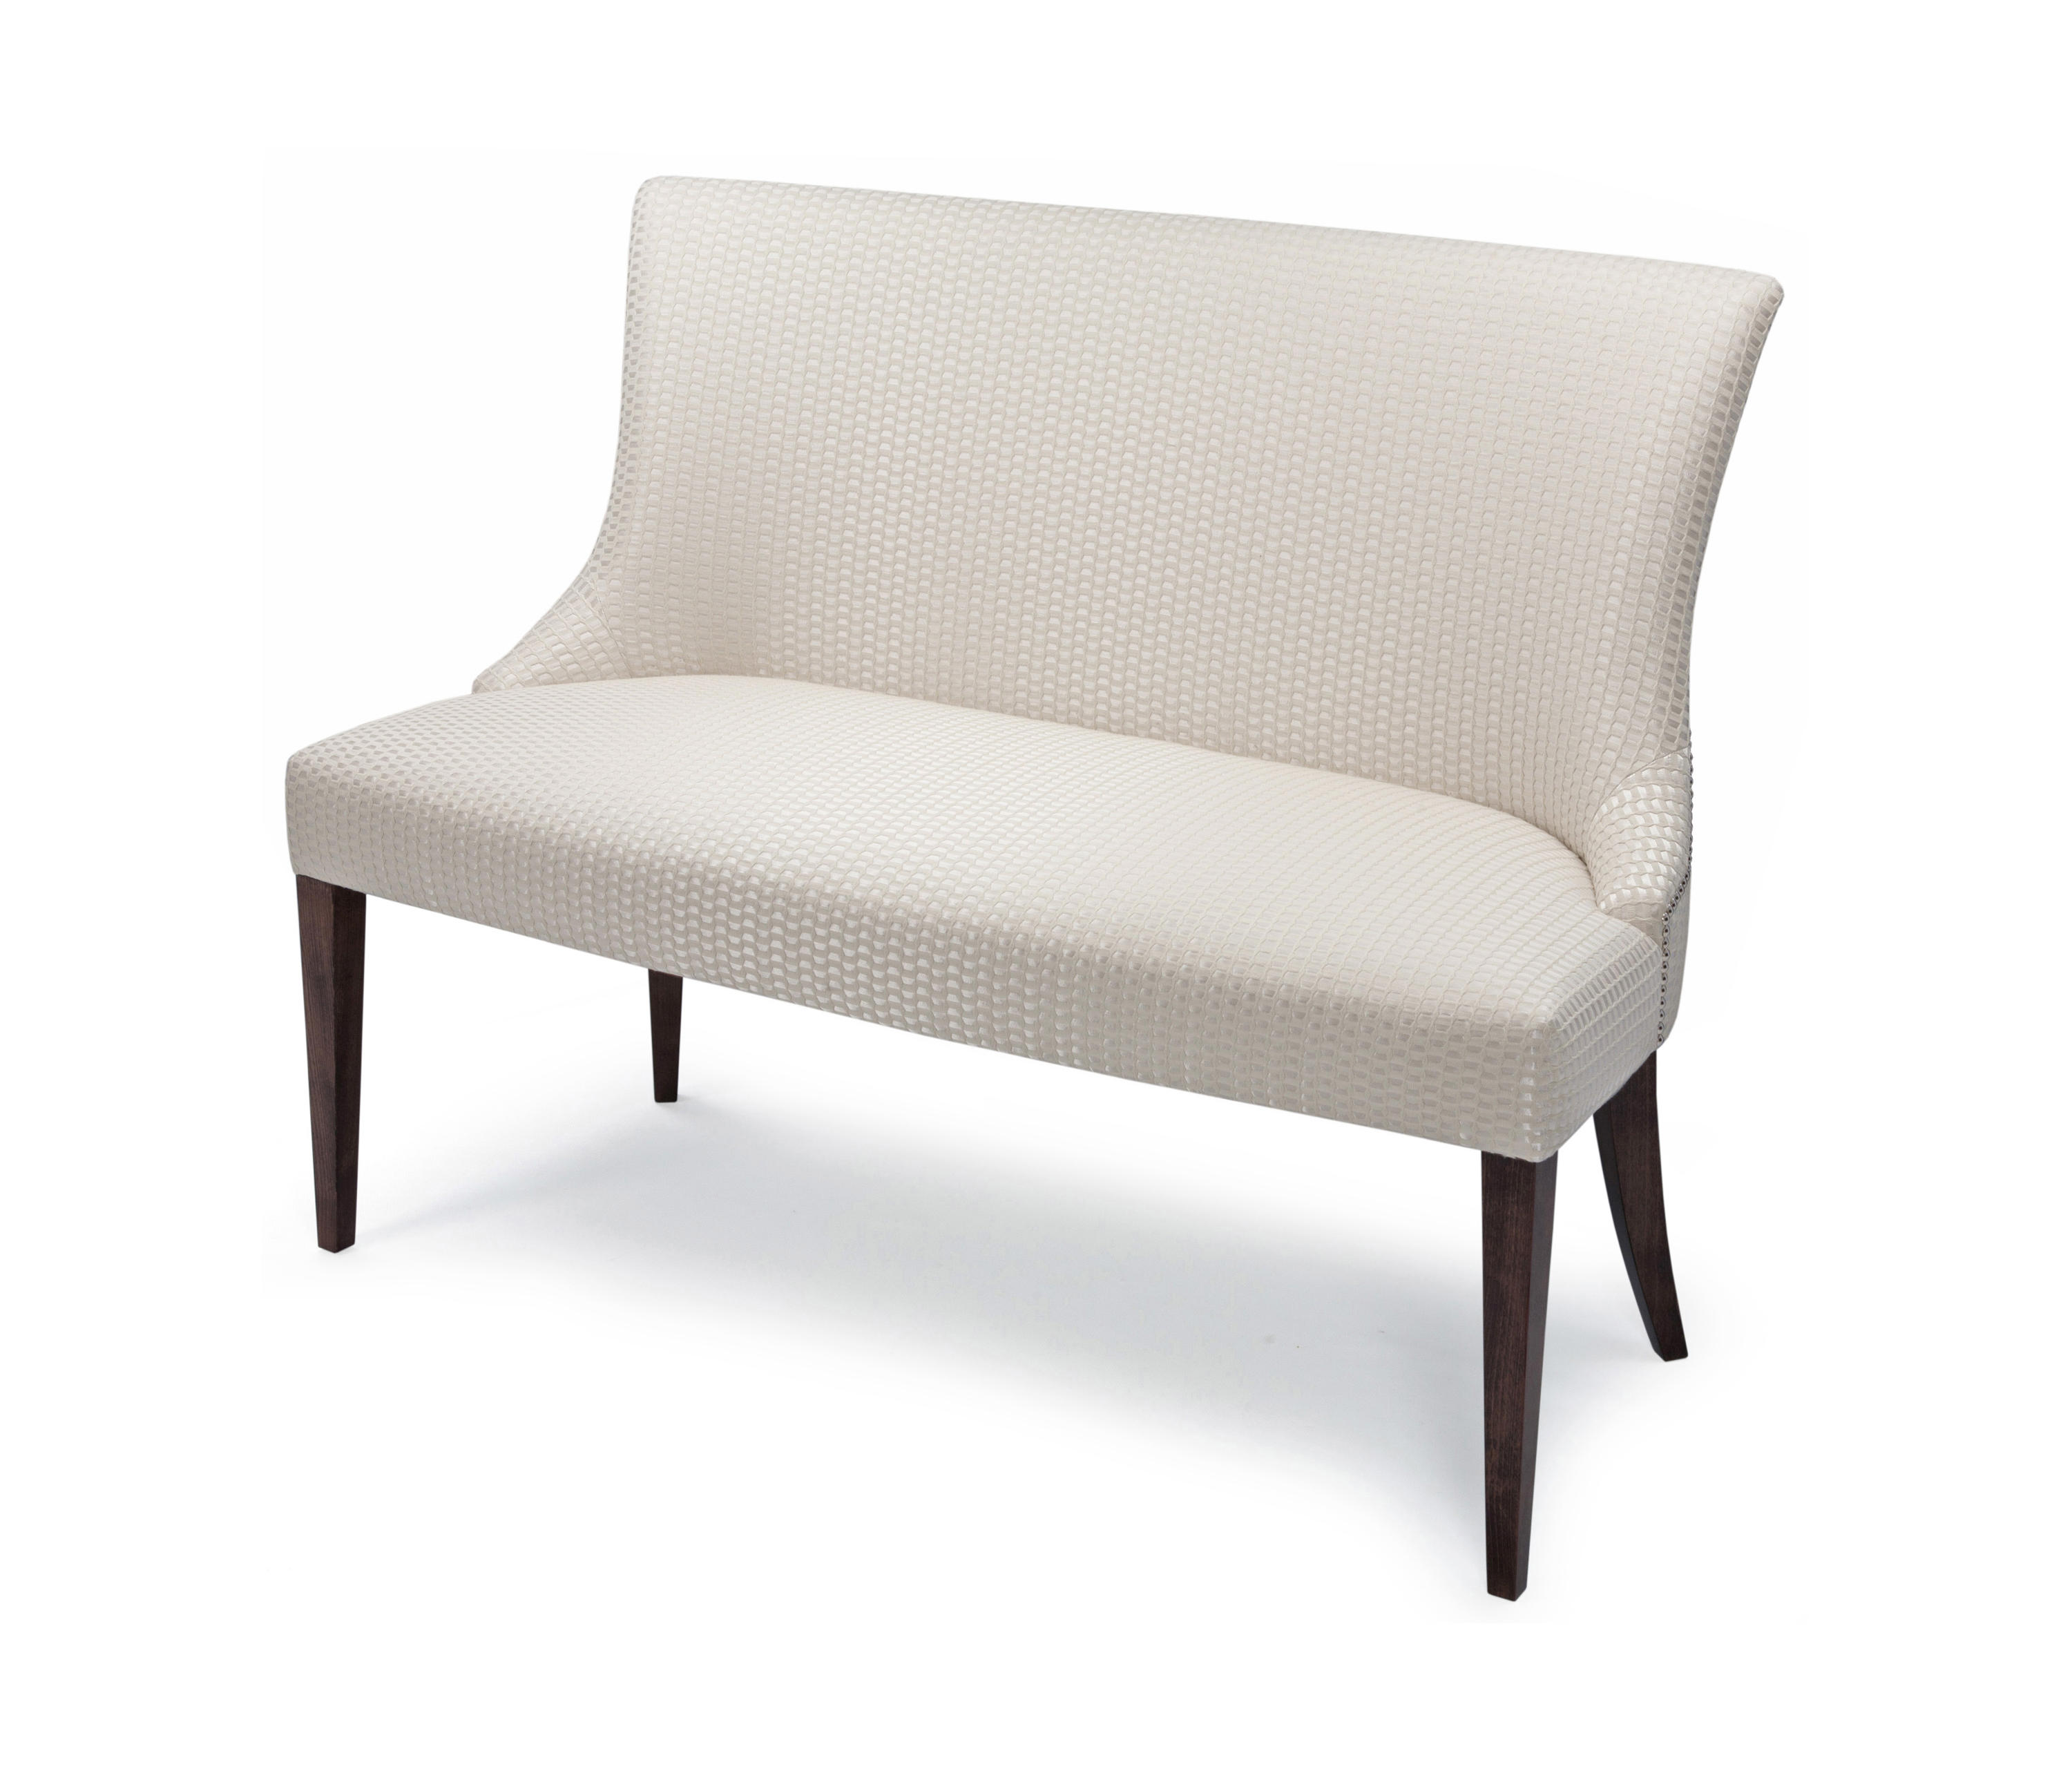 CHARLES BENCH - Benches from The Sofa & Chair Company Ltd | Architonic